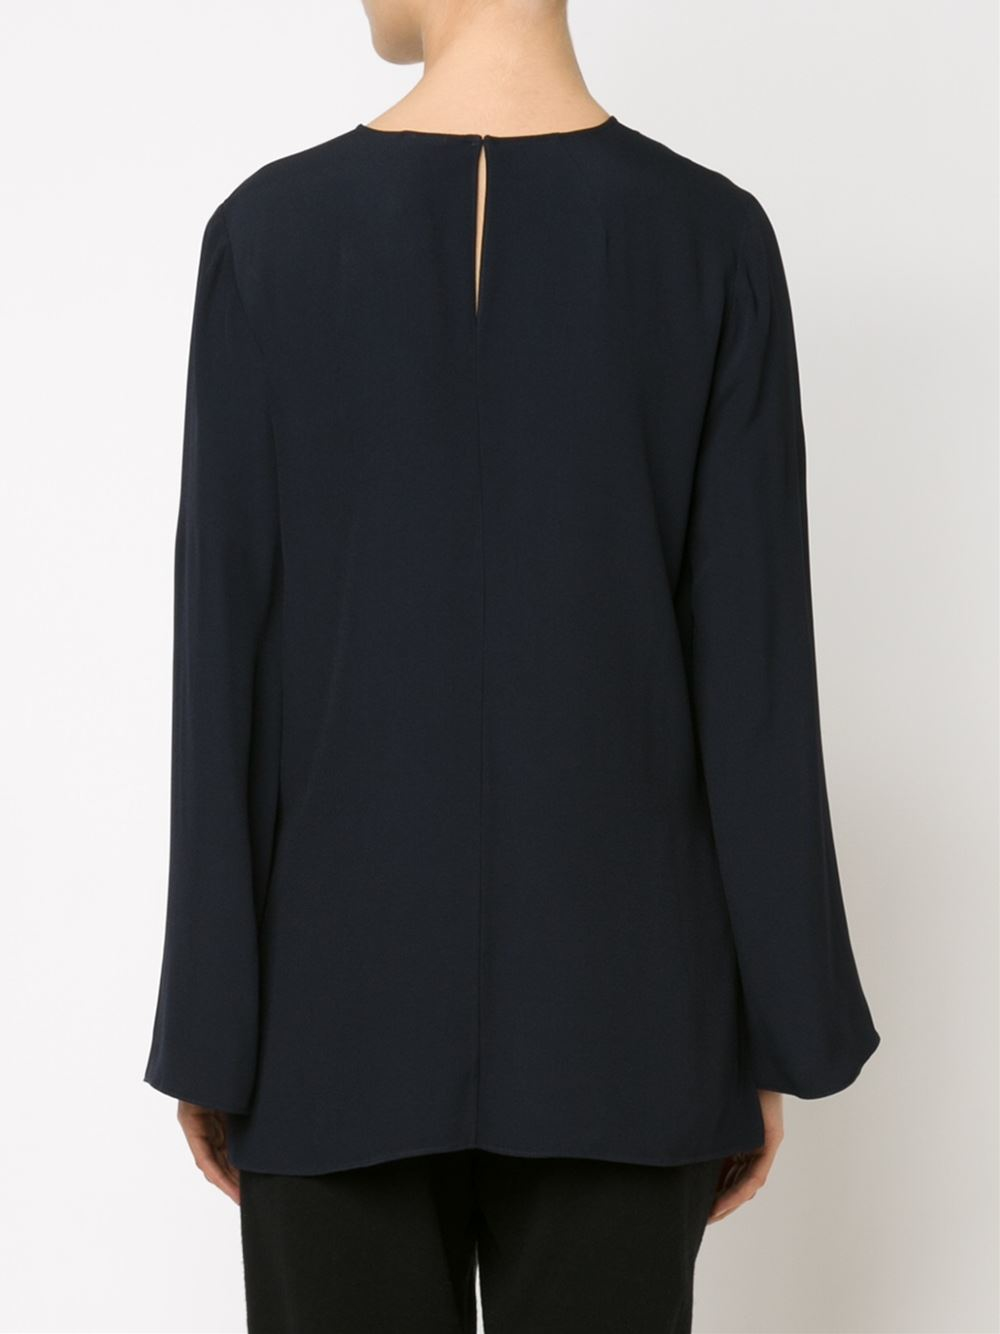 Adam lippes slit cuff blouse in blue lyst for Adam lippes women s long sleeve vee t shirt